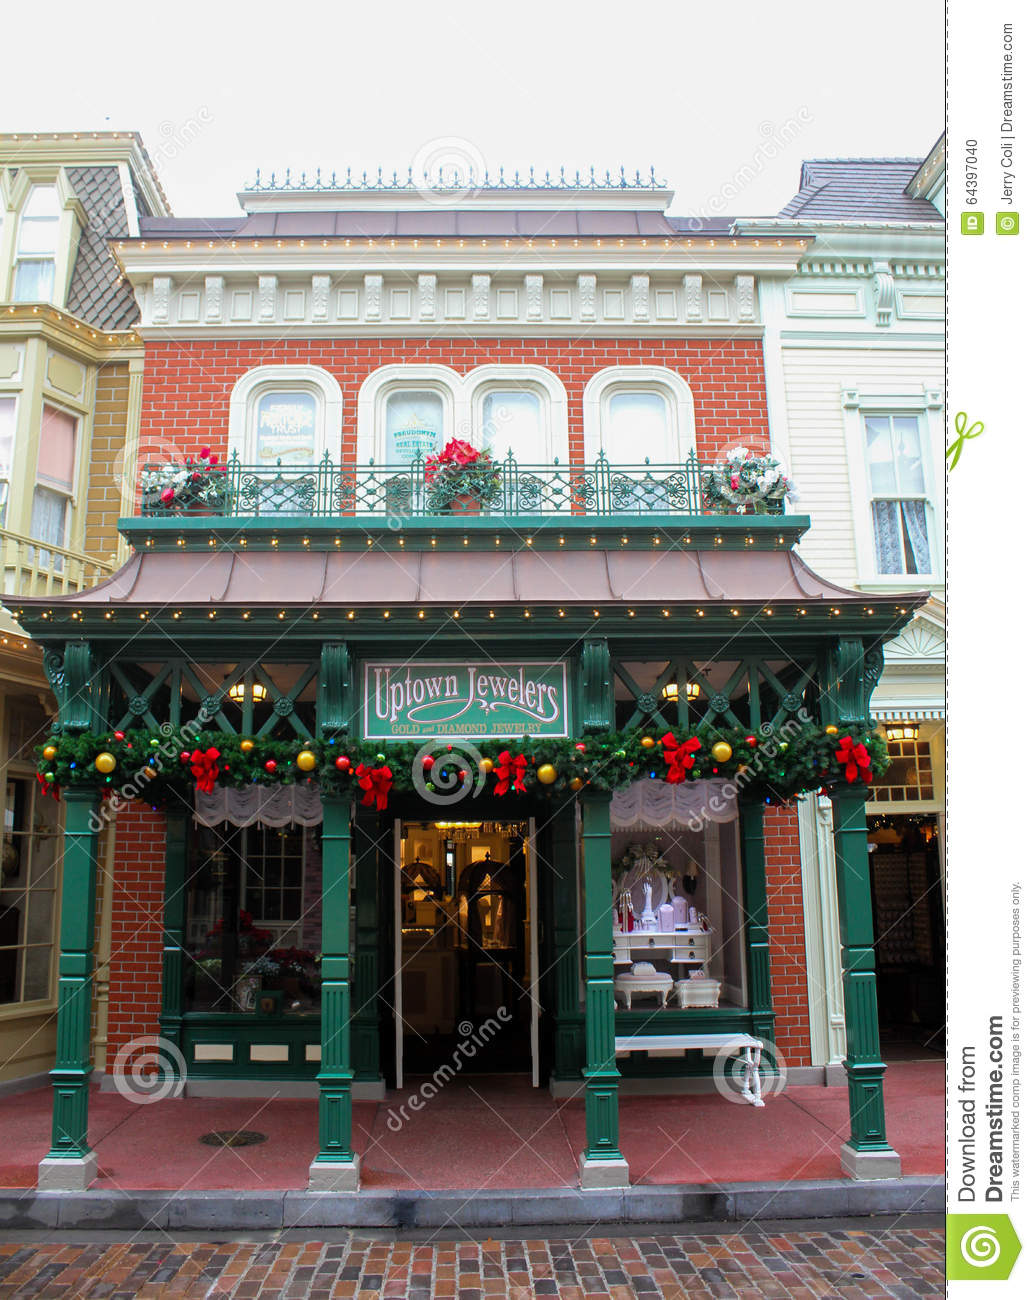 Uptown jewelers magic kingdom wdw editorial image image of uptown jewelers inside the magic kingdom is decorated for the christmas holidays publicscrutiny Image collections